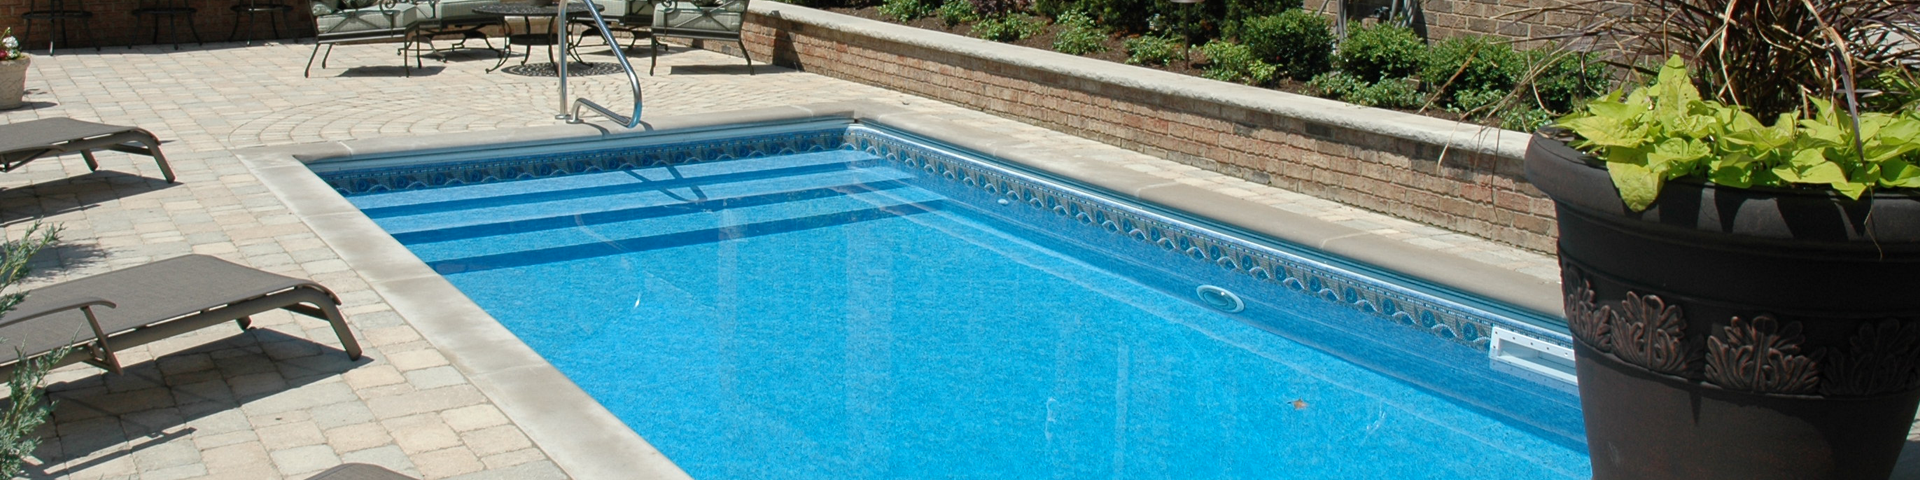 Vinyl Liner Inground Pools